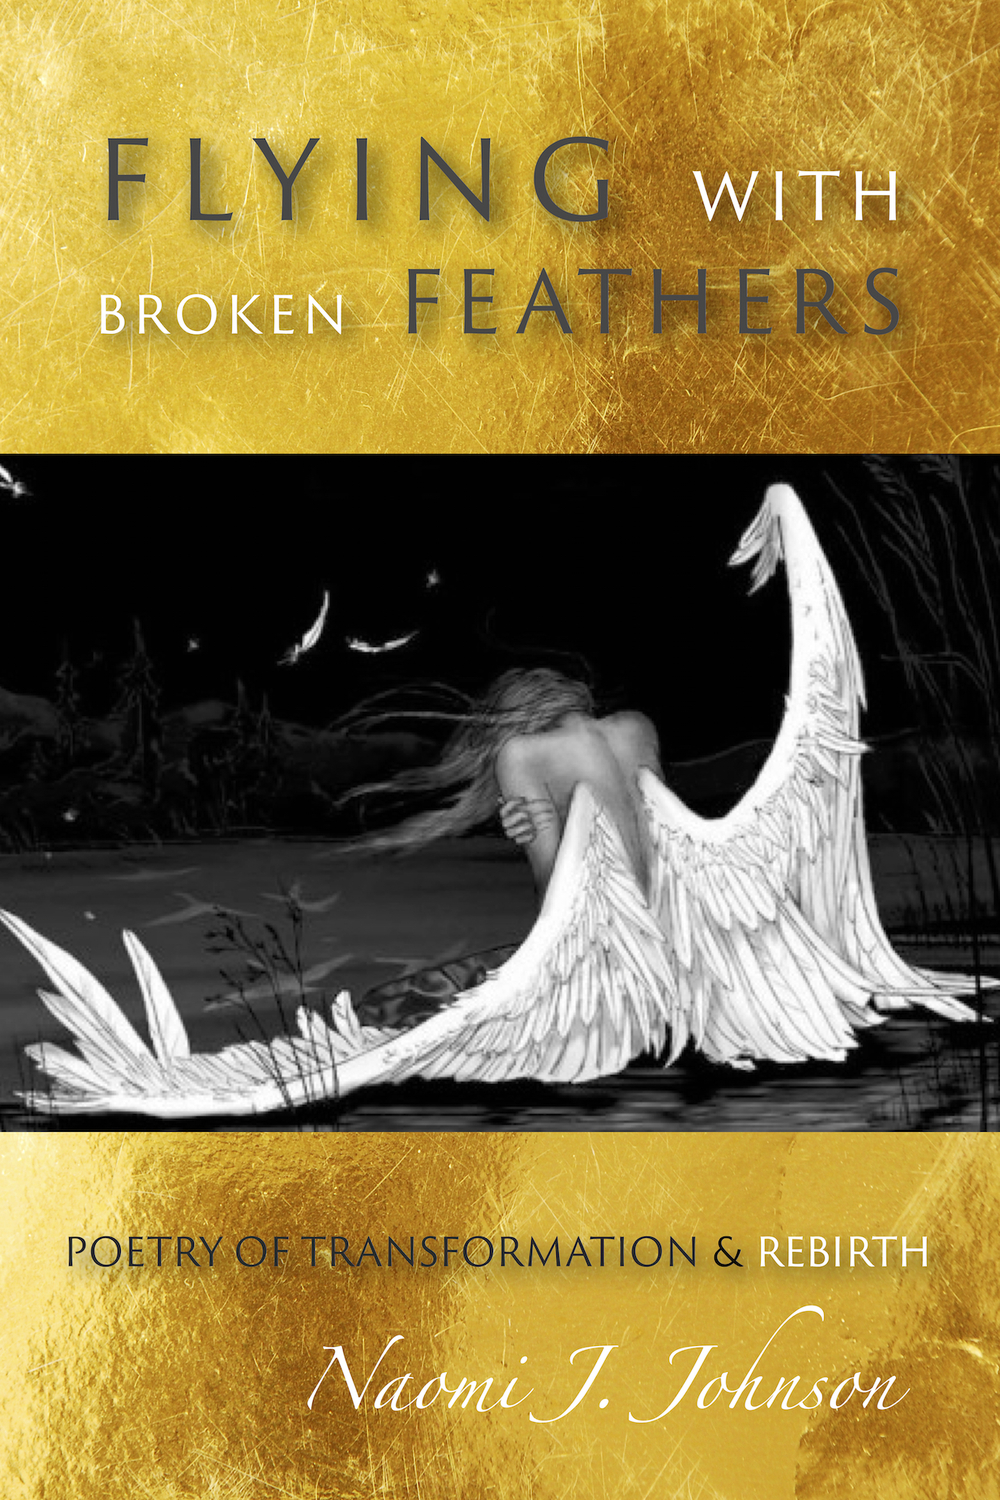 Flying with Broken Feathers - FrontCover copy.jpg